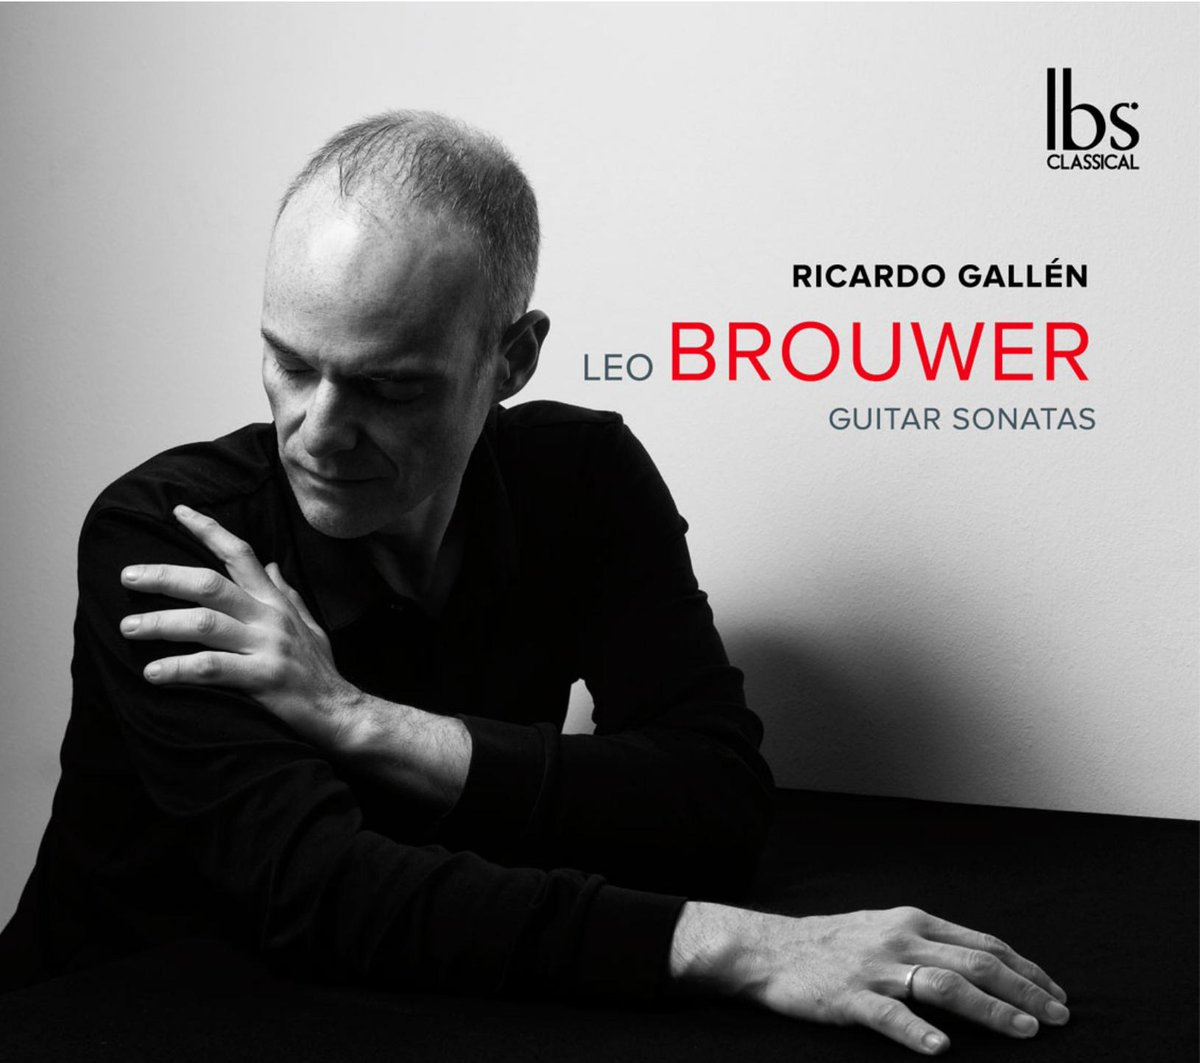 Todays new music recommendation: Leo Brouwer: Guitar Sonatas, contemporary classical music for the guitar by one of our leading Cuban composers, performed by Ricardo Gallén. Heres a video on how the album was made: youtube.com/watch?v=4Ds223…